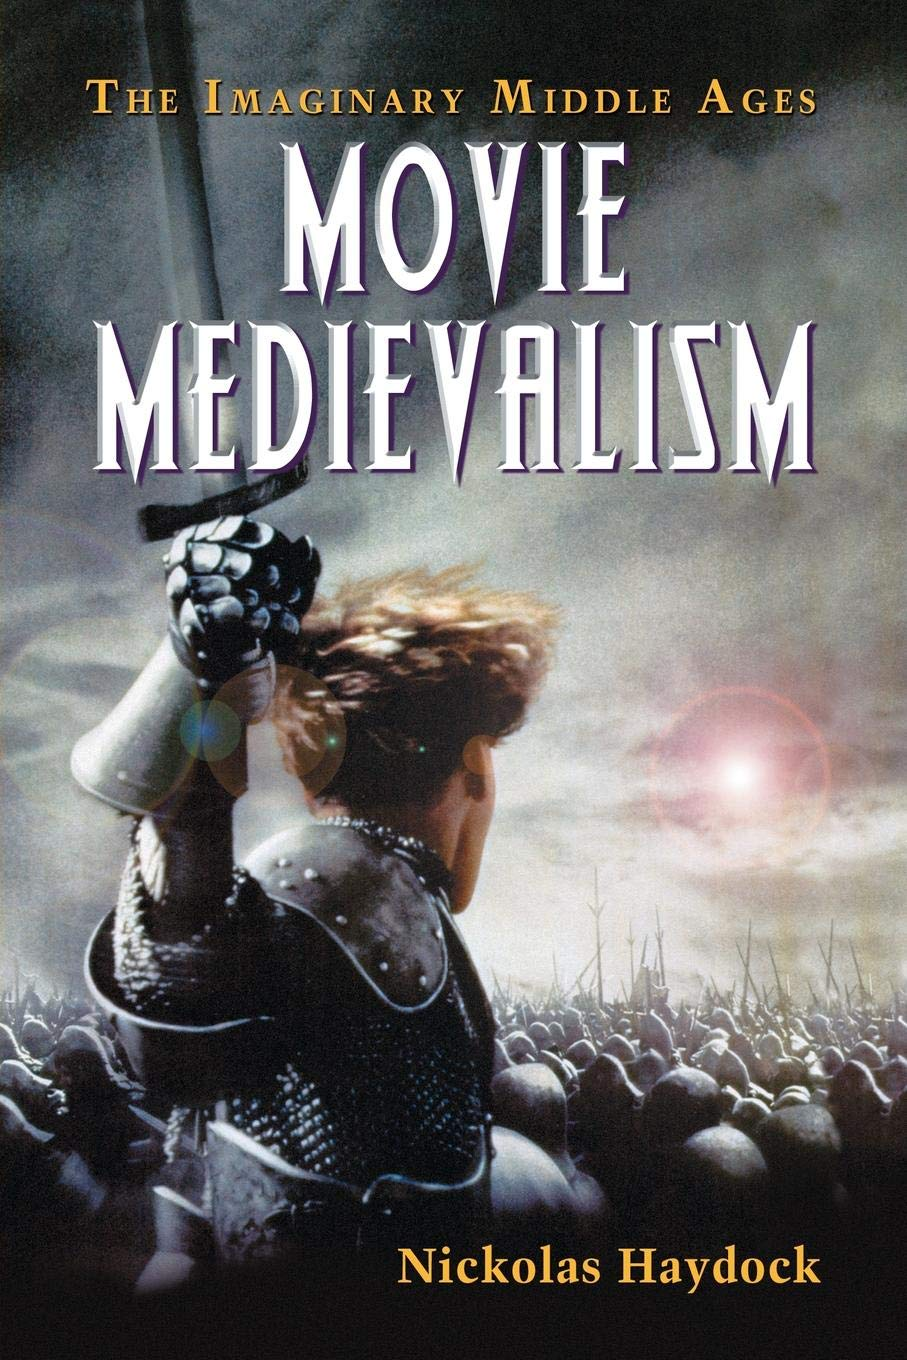 Movie Medievalism: The Imaginary Middle Ages